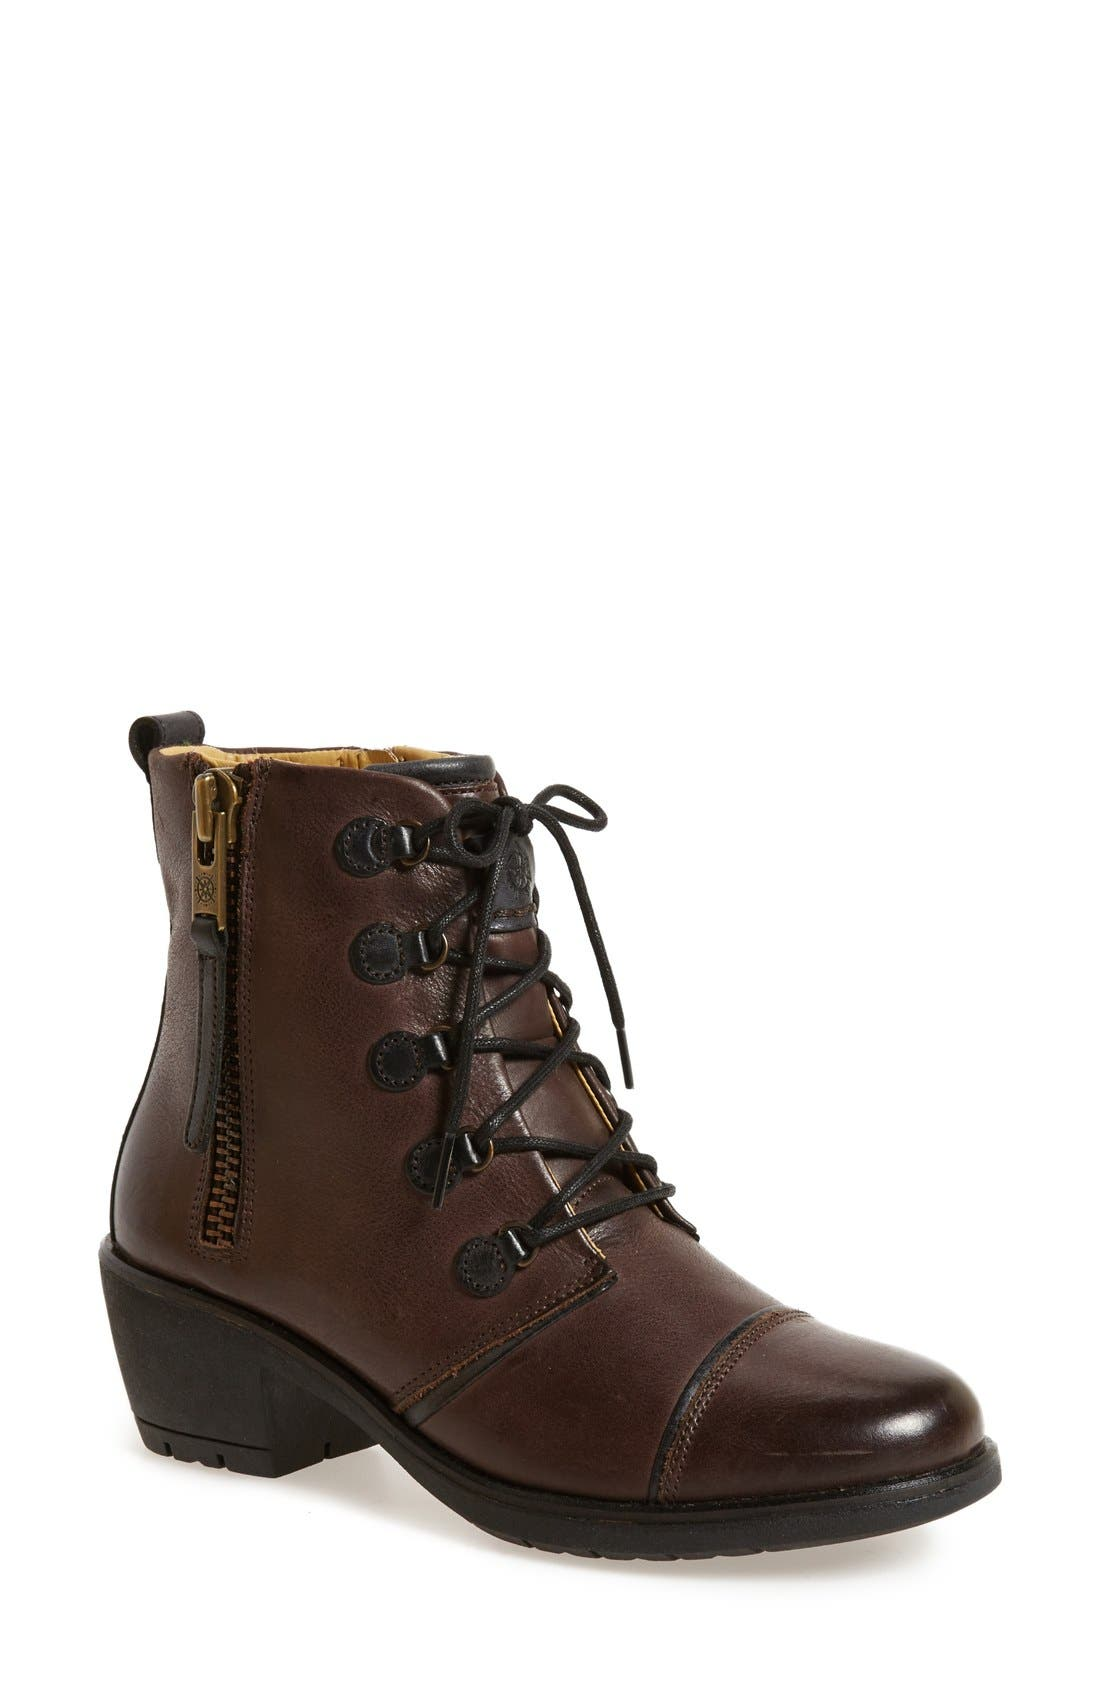 BUSSOLA 'Shelley' Lace-Up Boot